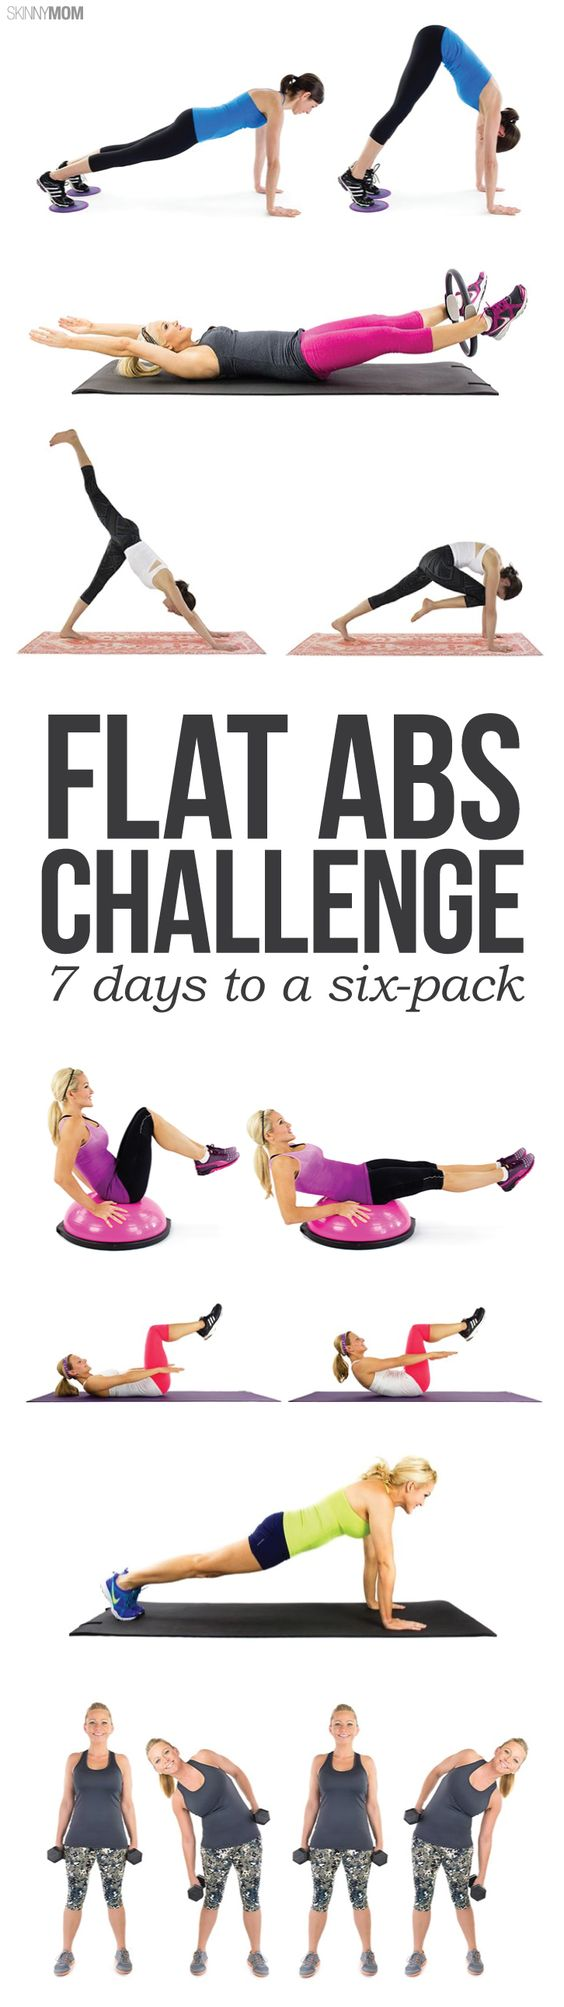 Do you want flatter abs? Try our FLAT ABS MINI CHALLENGE!